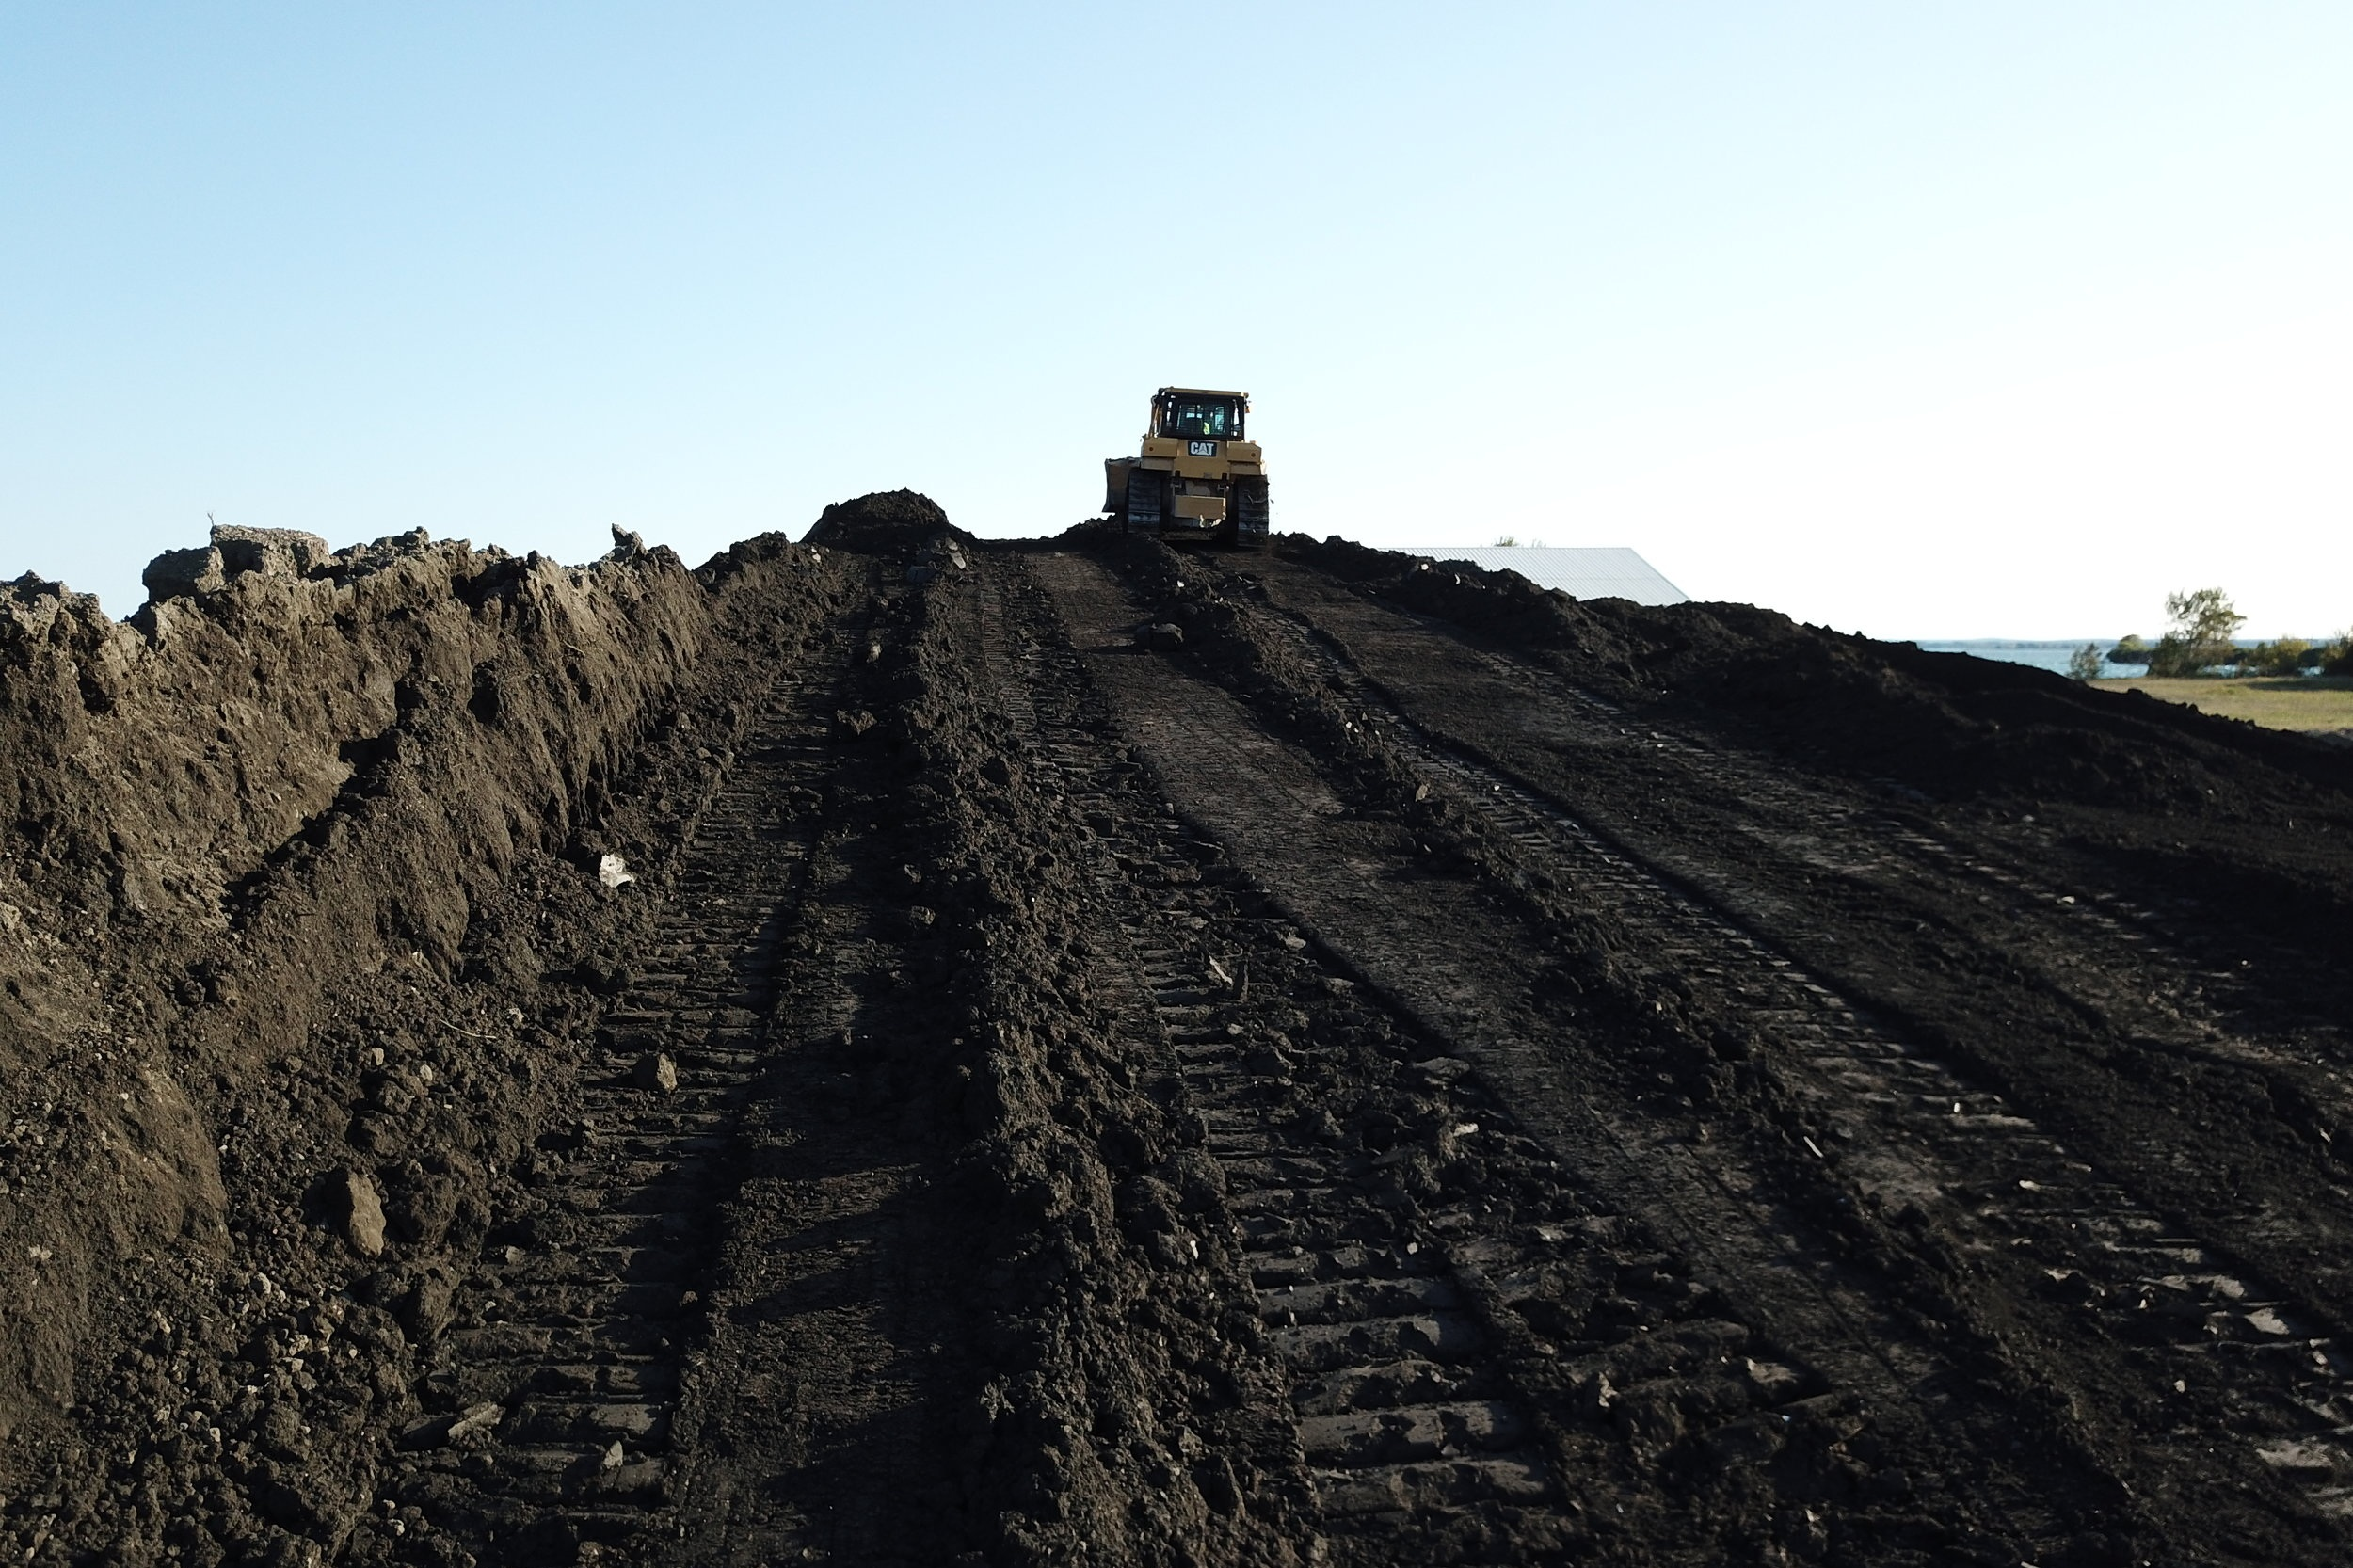 EXCAVATING - Complete any excavation job on time and within your budget by turning to our full-service excavation team.